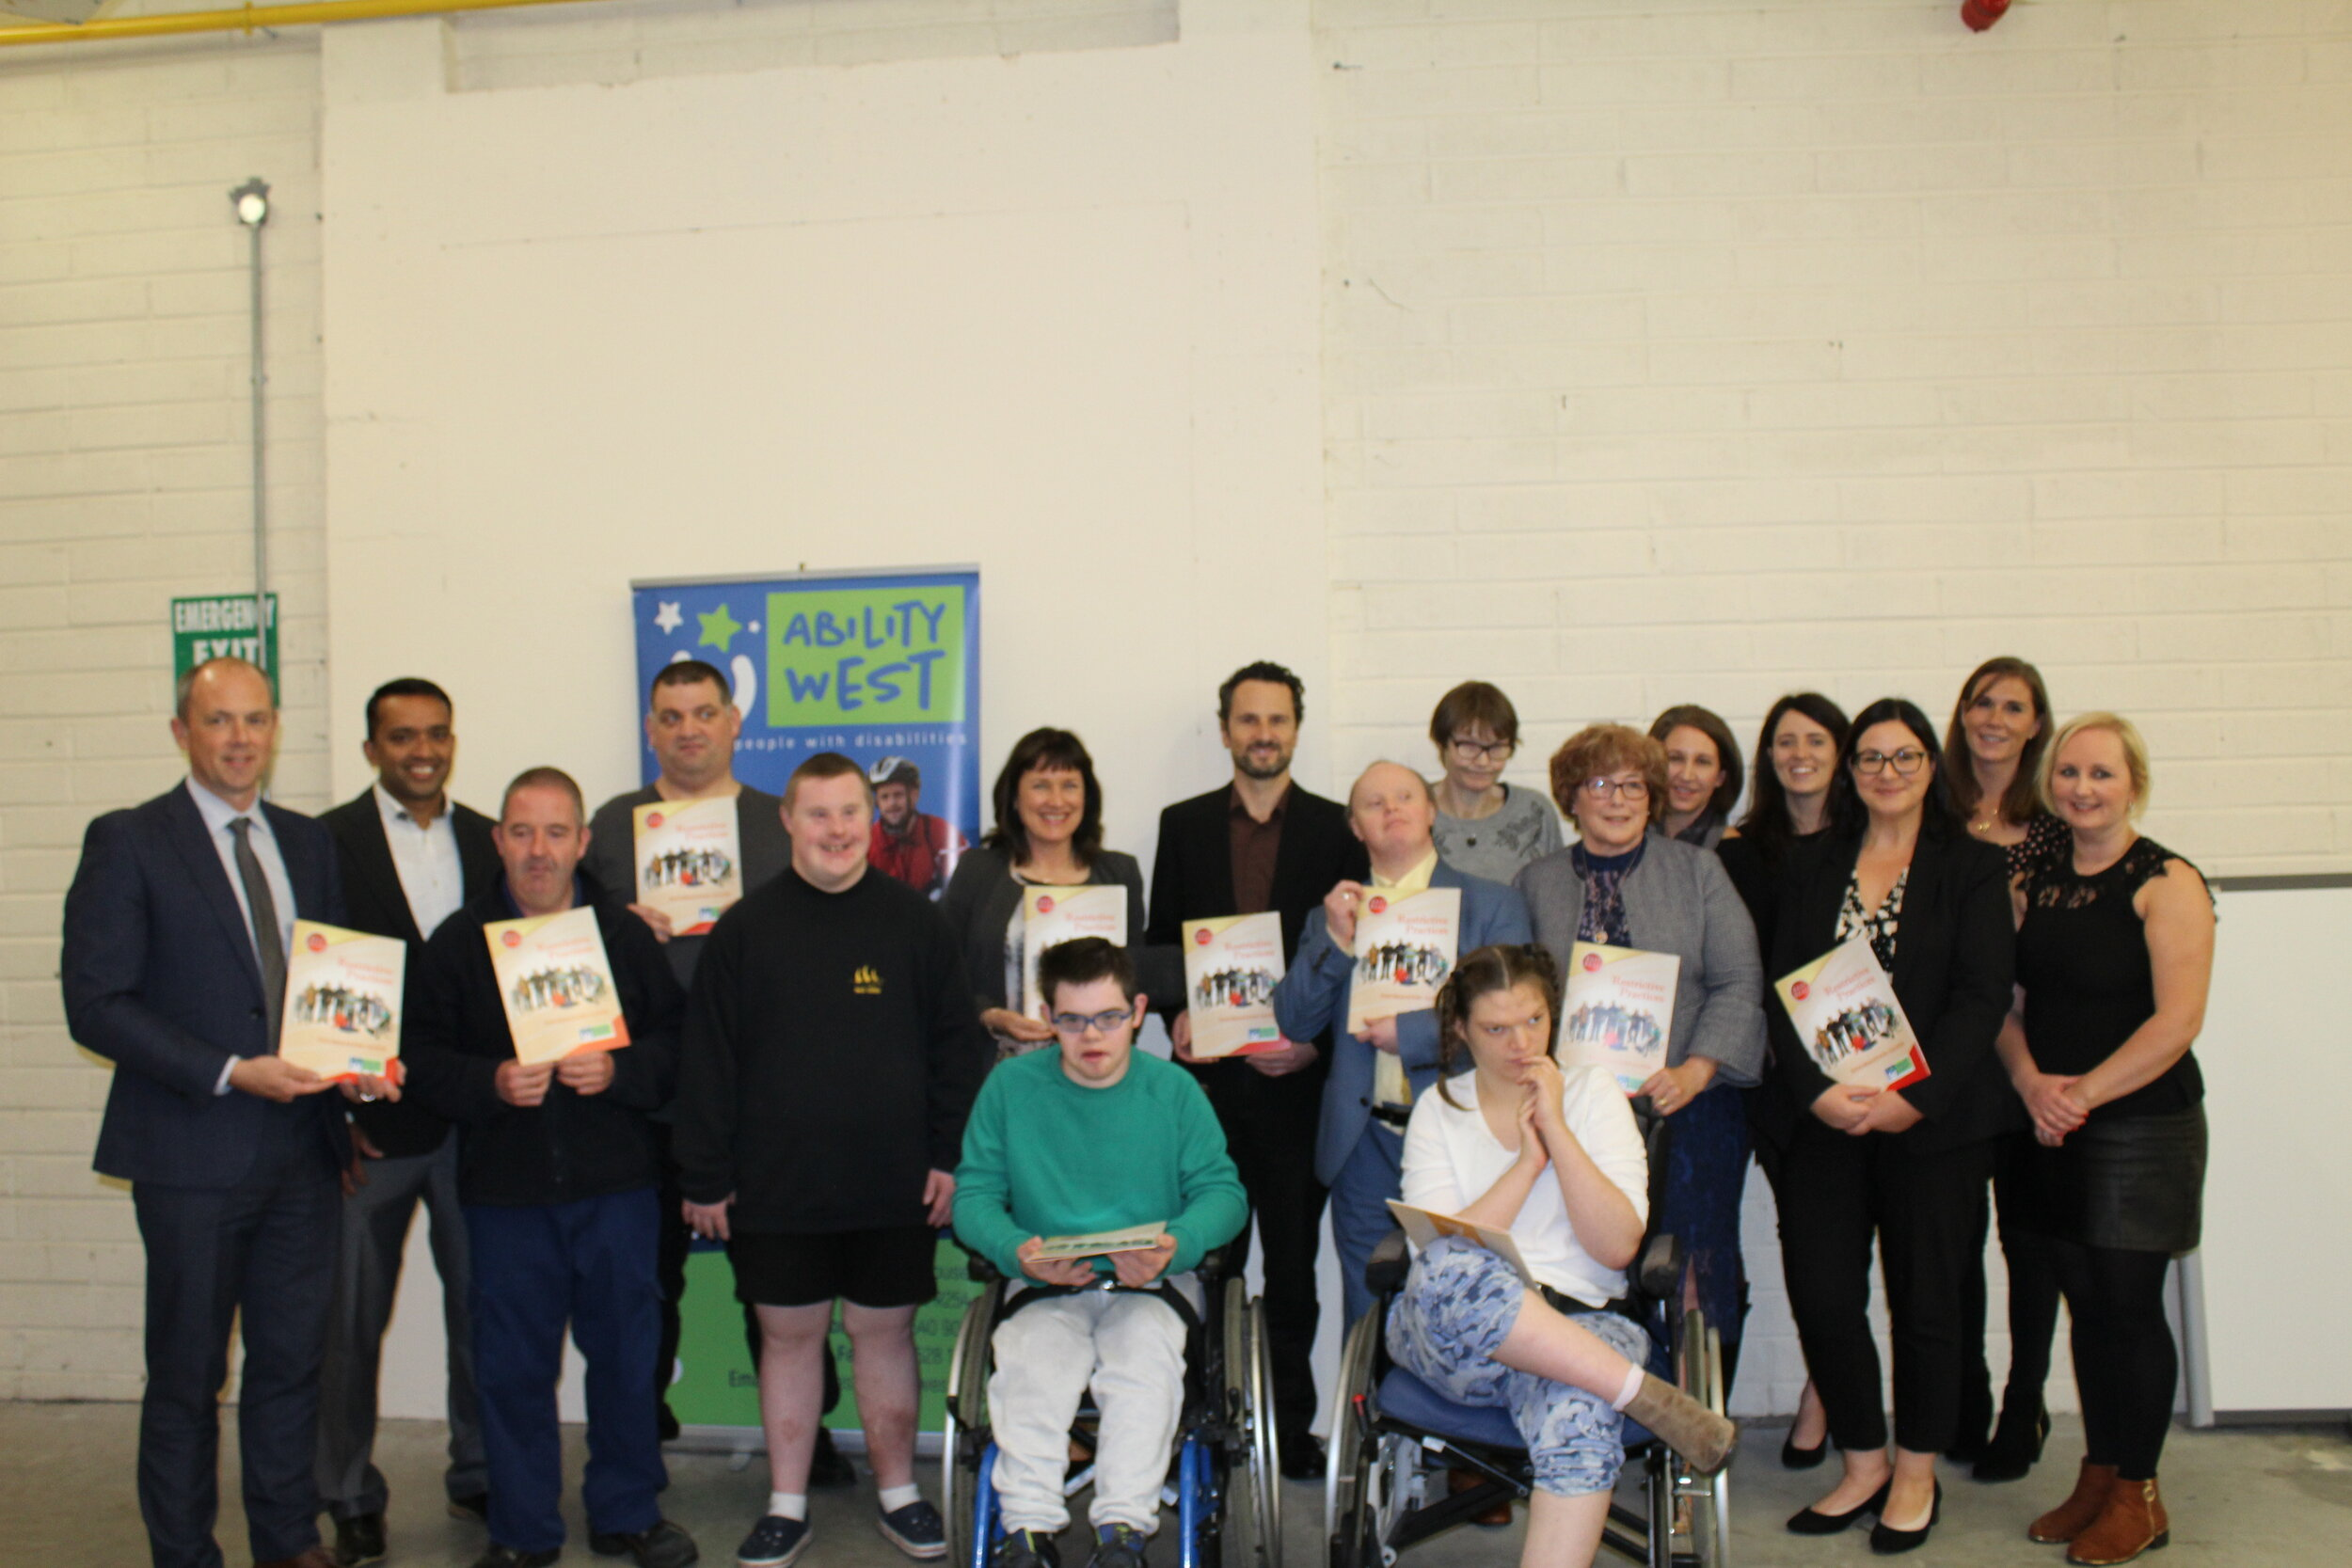 Service Users, Staff and Chairperson of Ability West